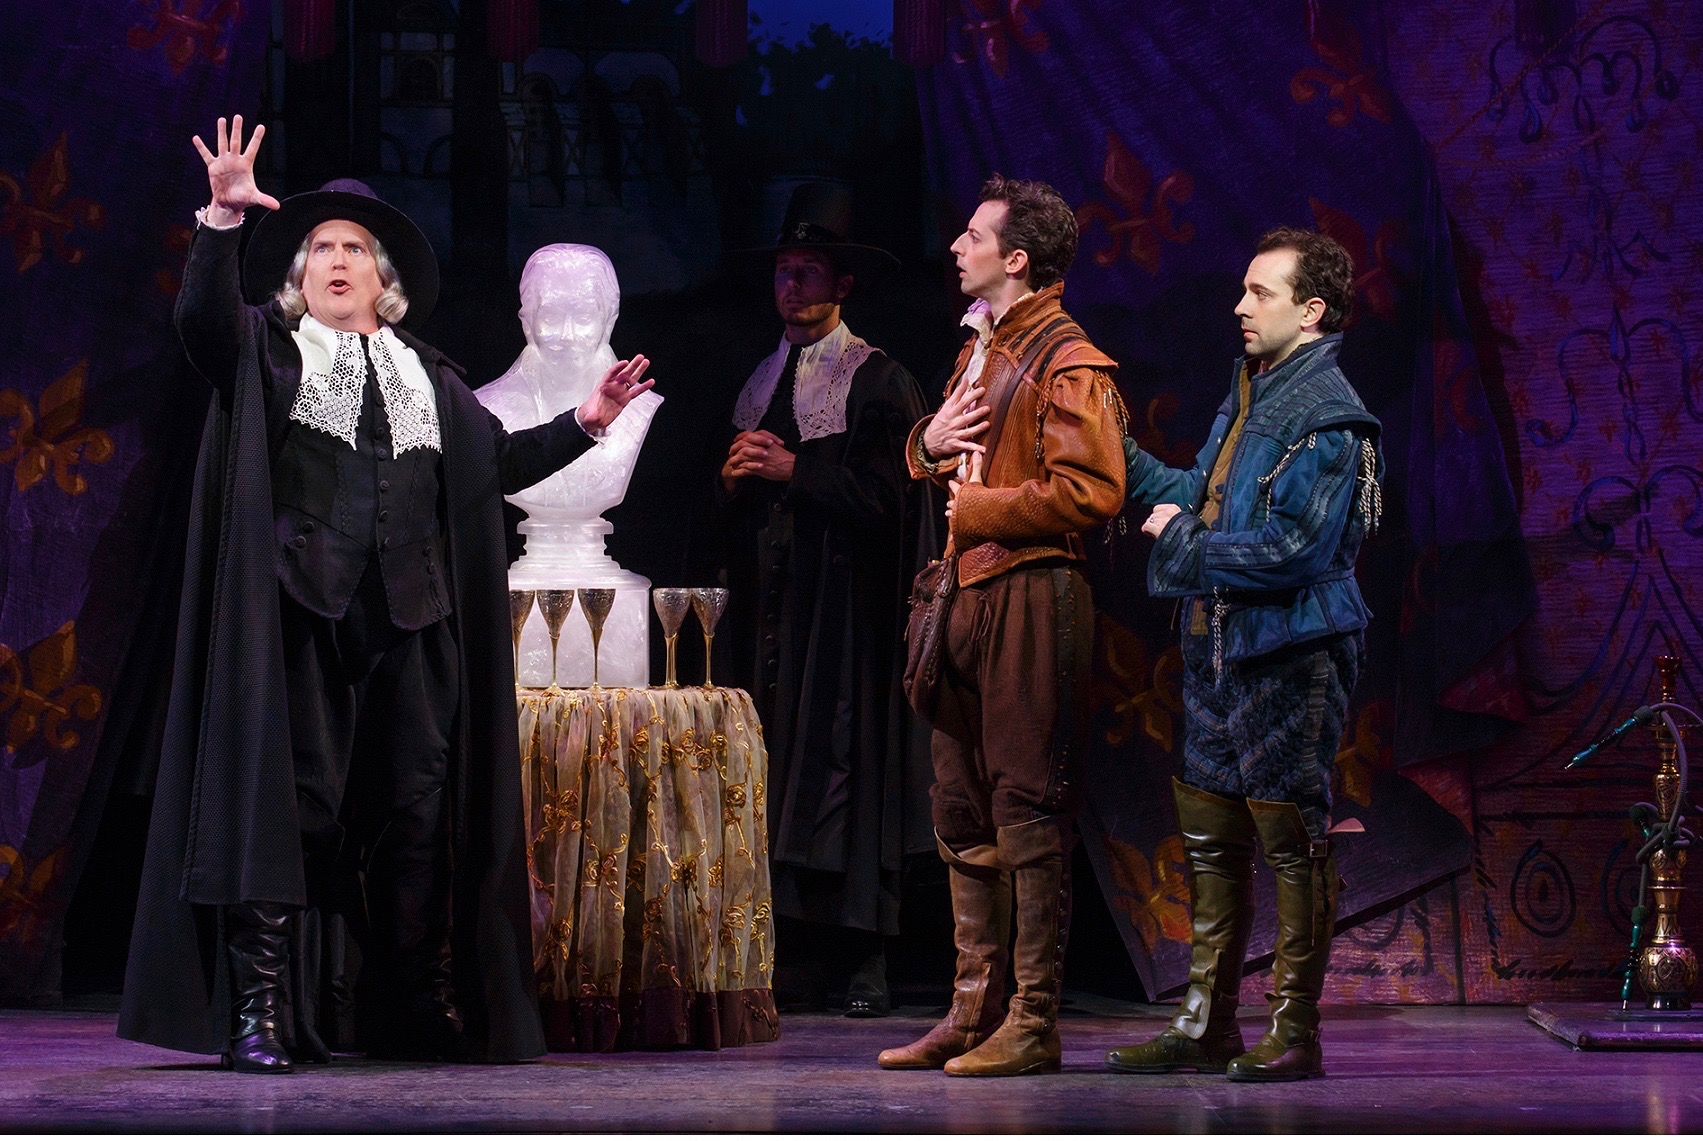 In 'Something Rotten!', Shakespeare's would-be rivals are given mystic foreknowledge of how to write a hit show—but will they proceed to lay an egg?